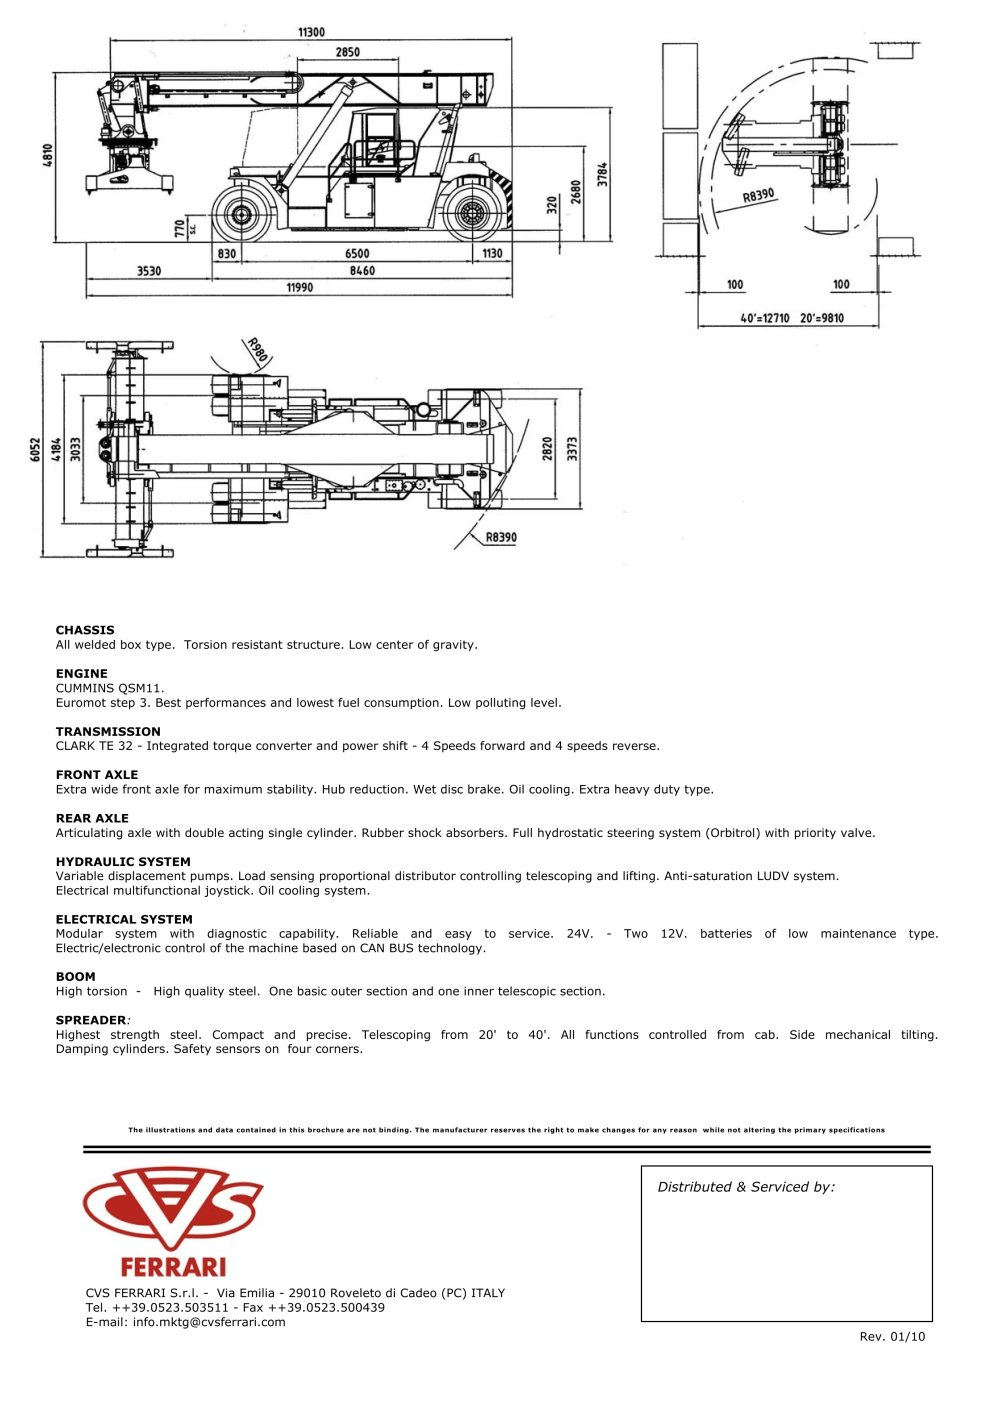 Owens Container Forklift specs